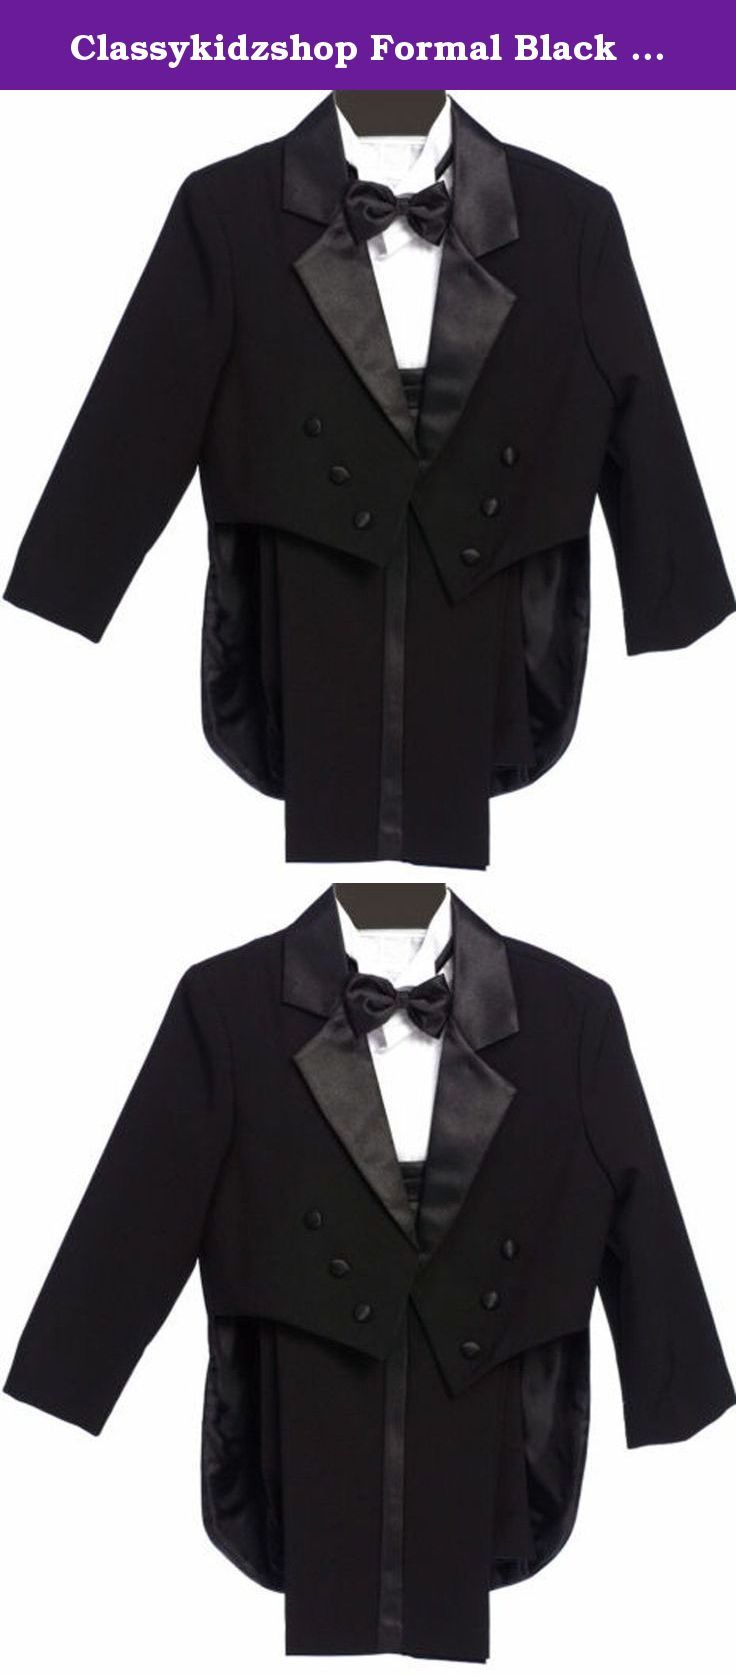 Classykidzshop Formal Black Tuxedo with Tail Cummerbund Bowtie Suit 2T. High quality brand tuxedo with jacket with tail, cummerbund, bow tie, long sleeve formal white suit shirt, black vest, and pants. The jacket is completely lined in polyester material with tail style and two buttons to close on the front. The matching white long sleeve tuxido shirt comes with black satin bow tie. The matching black pants have two individual pockets at both sides with black shinning satin striped down…